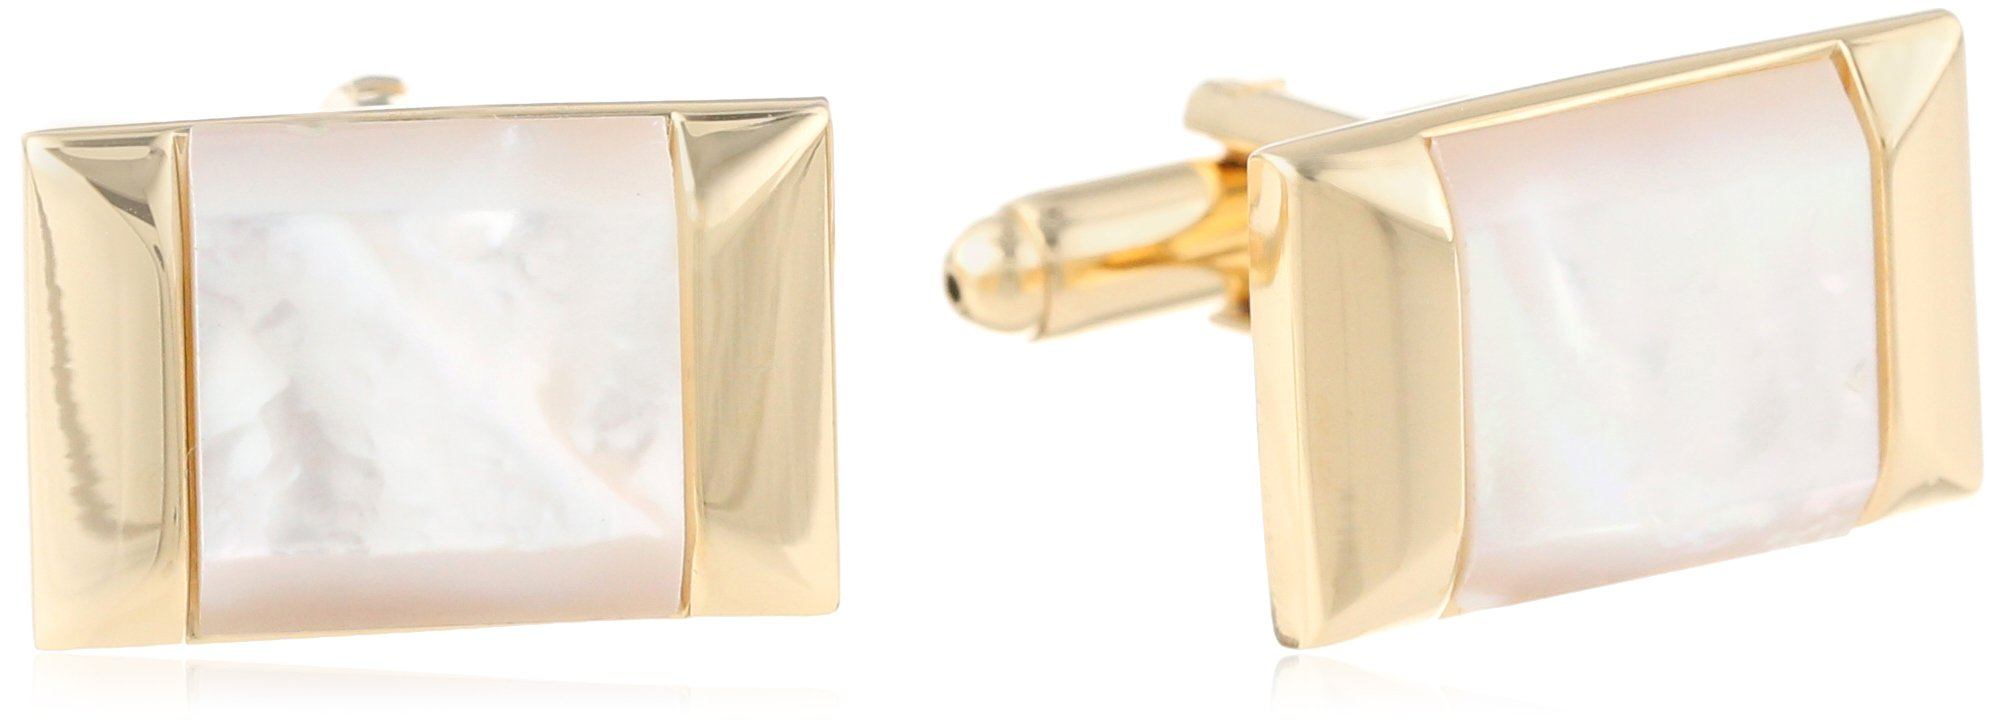 Stacy Adams Men's Cuff Link with Mop Stone, Gold, One Size by Stacy Adams (Image #1)